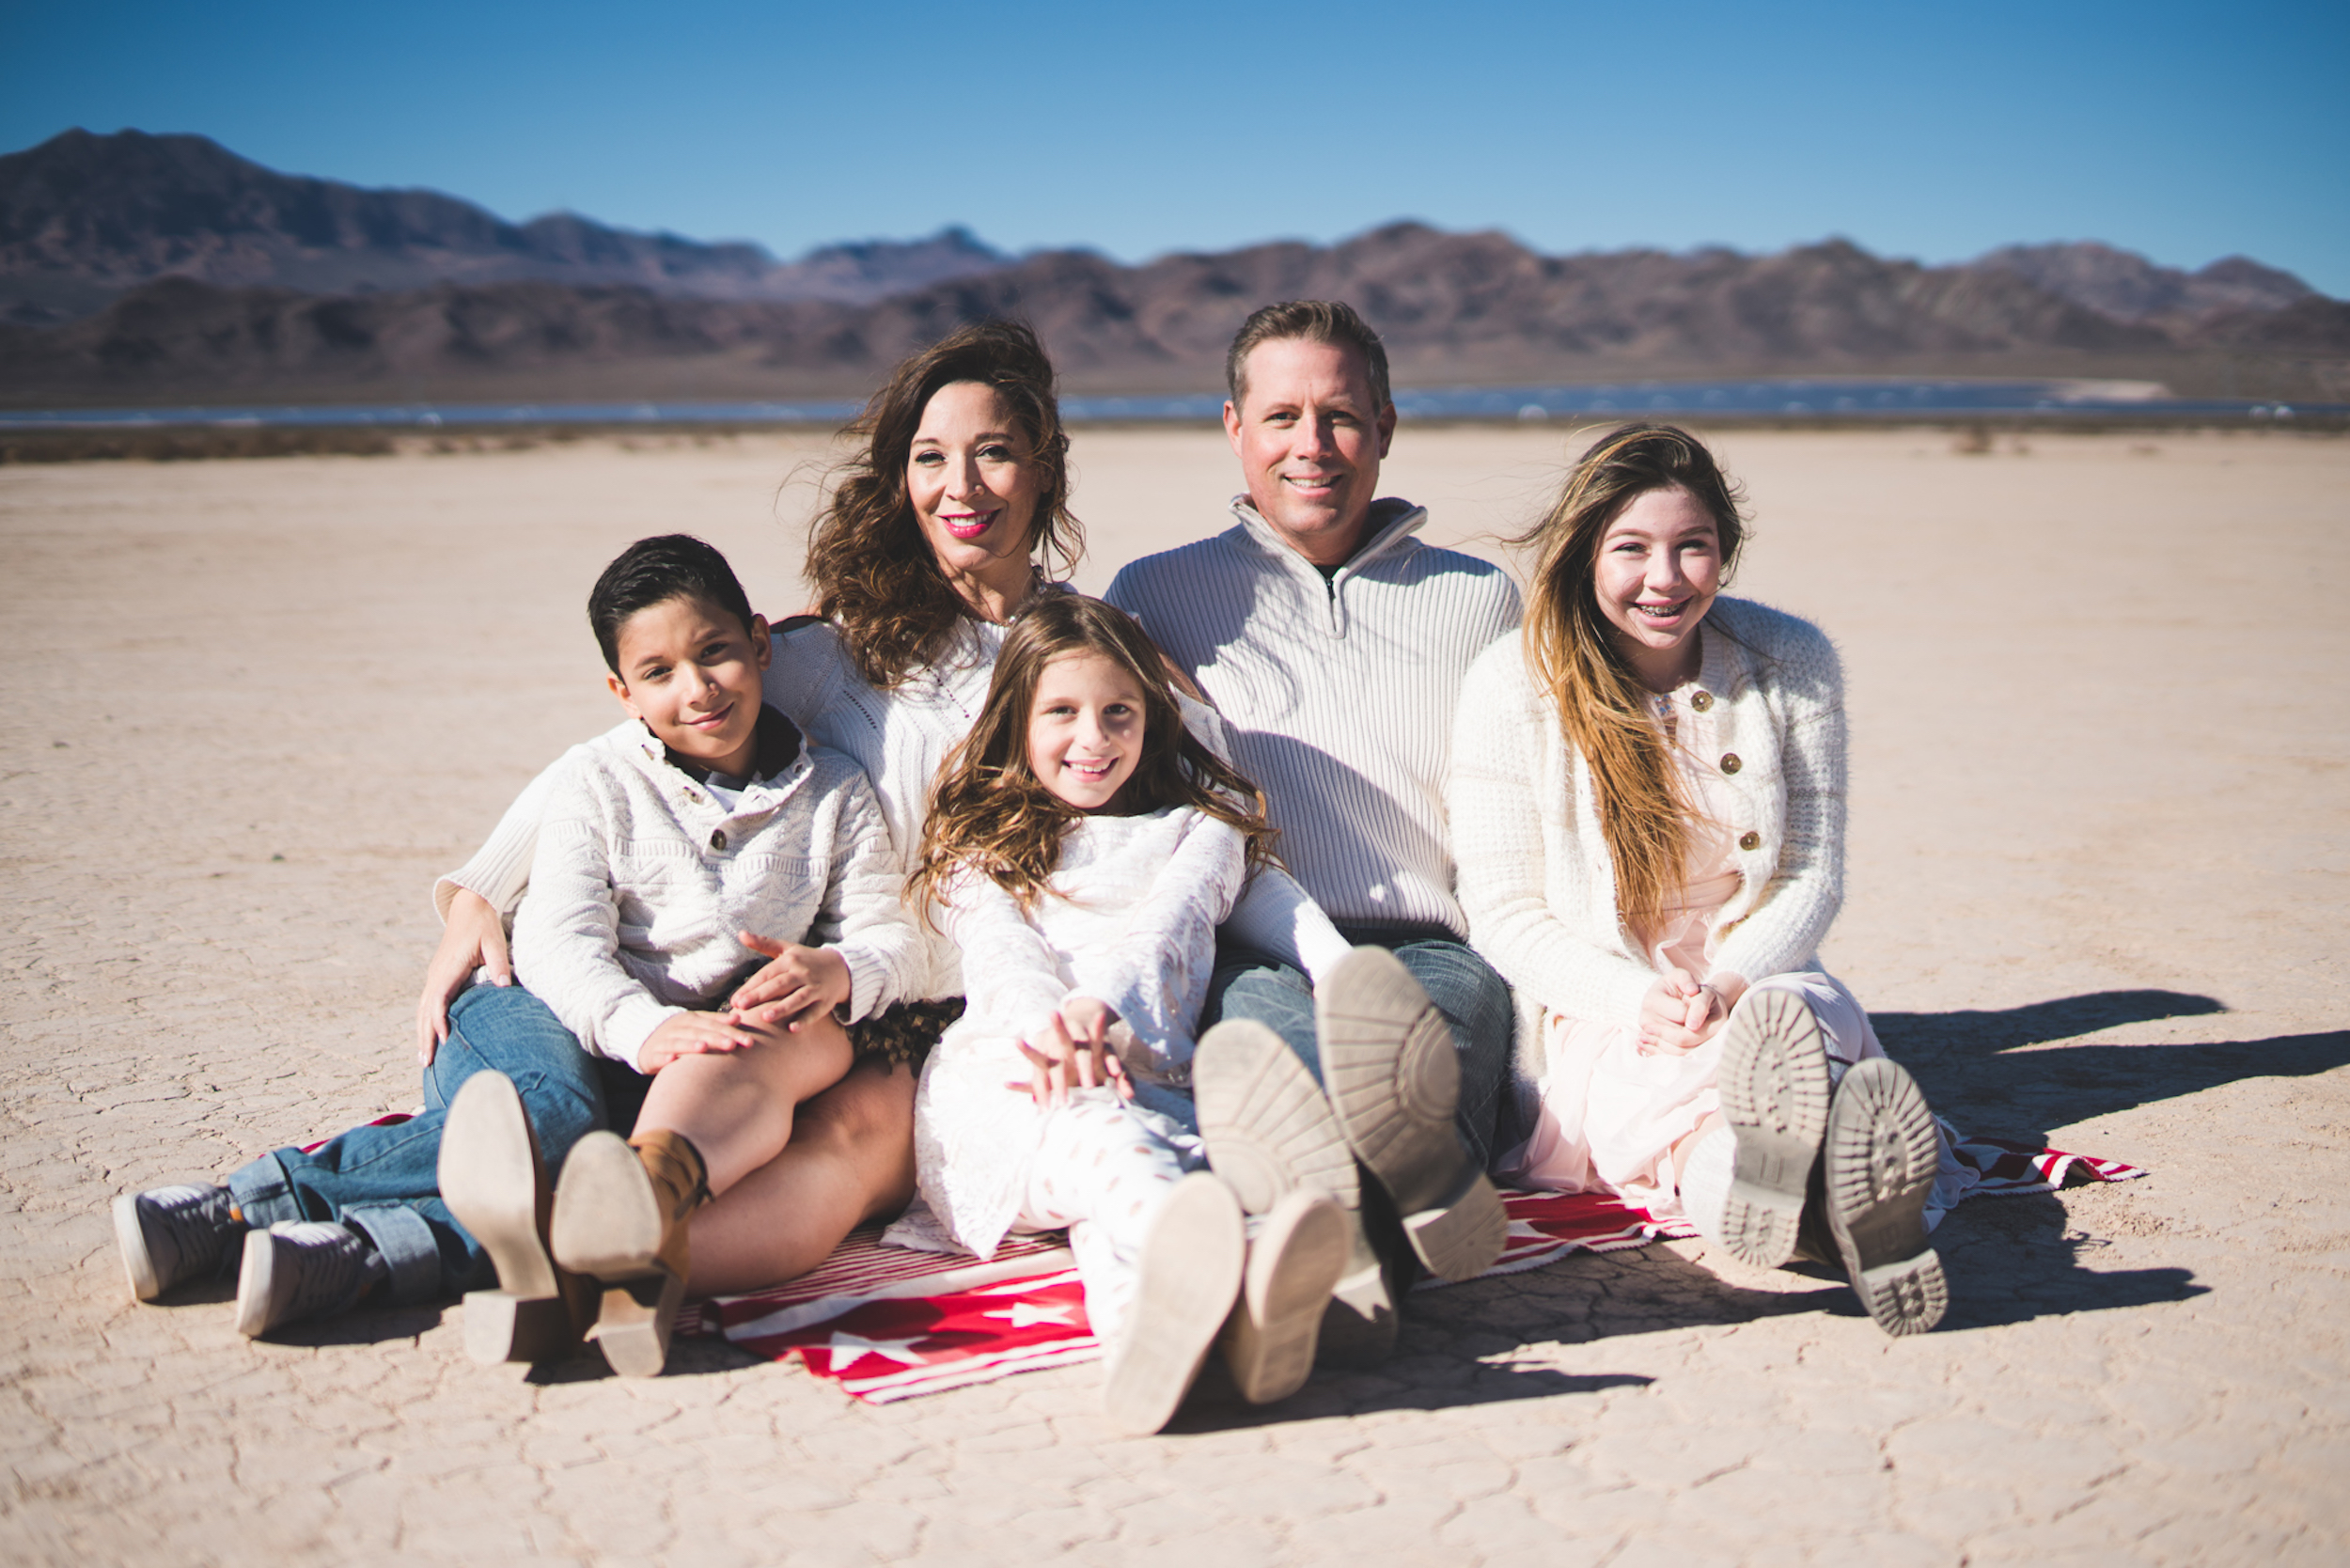 Family Portraits - Portraits of you and your loved ones